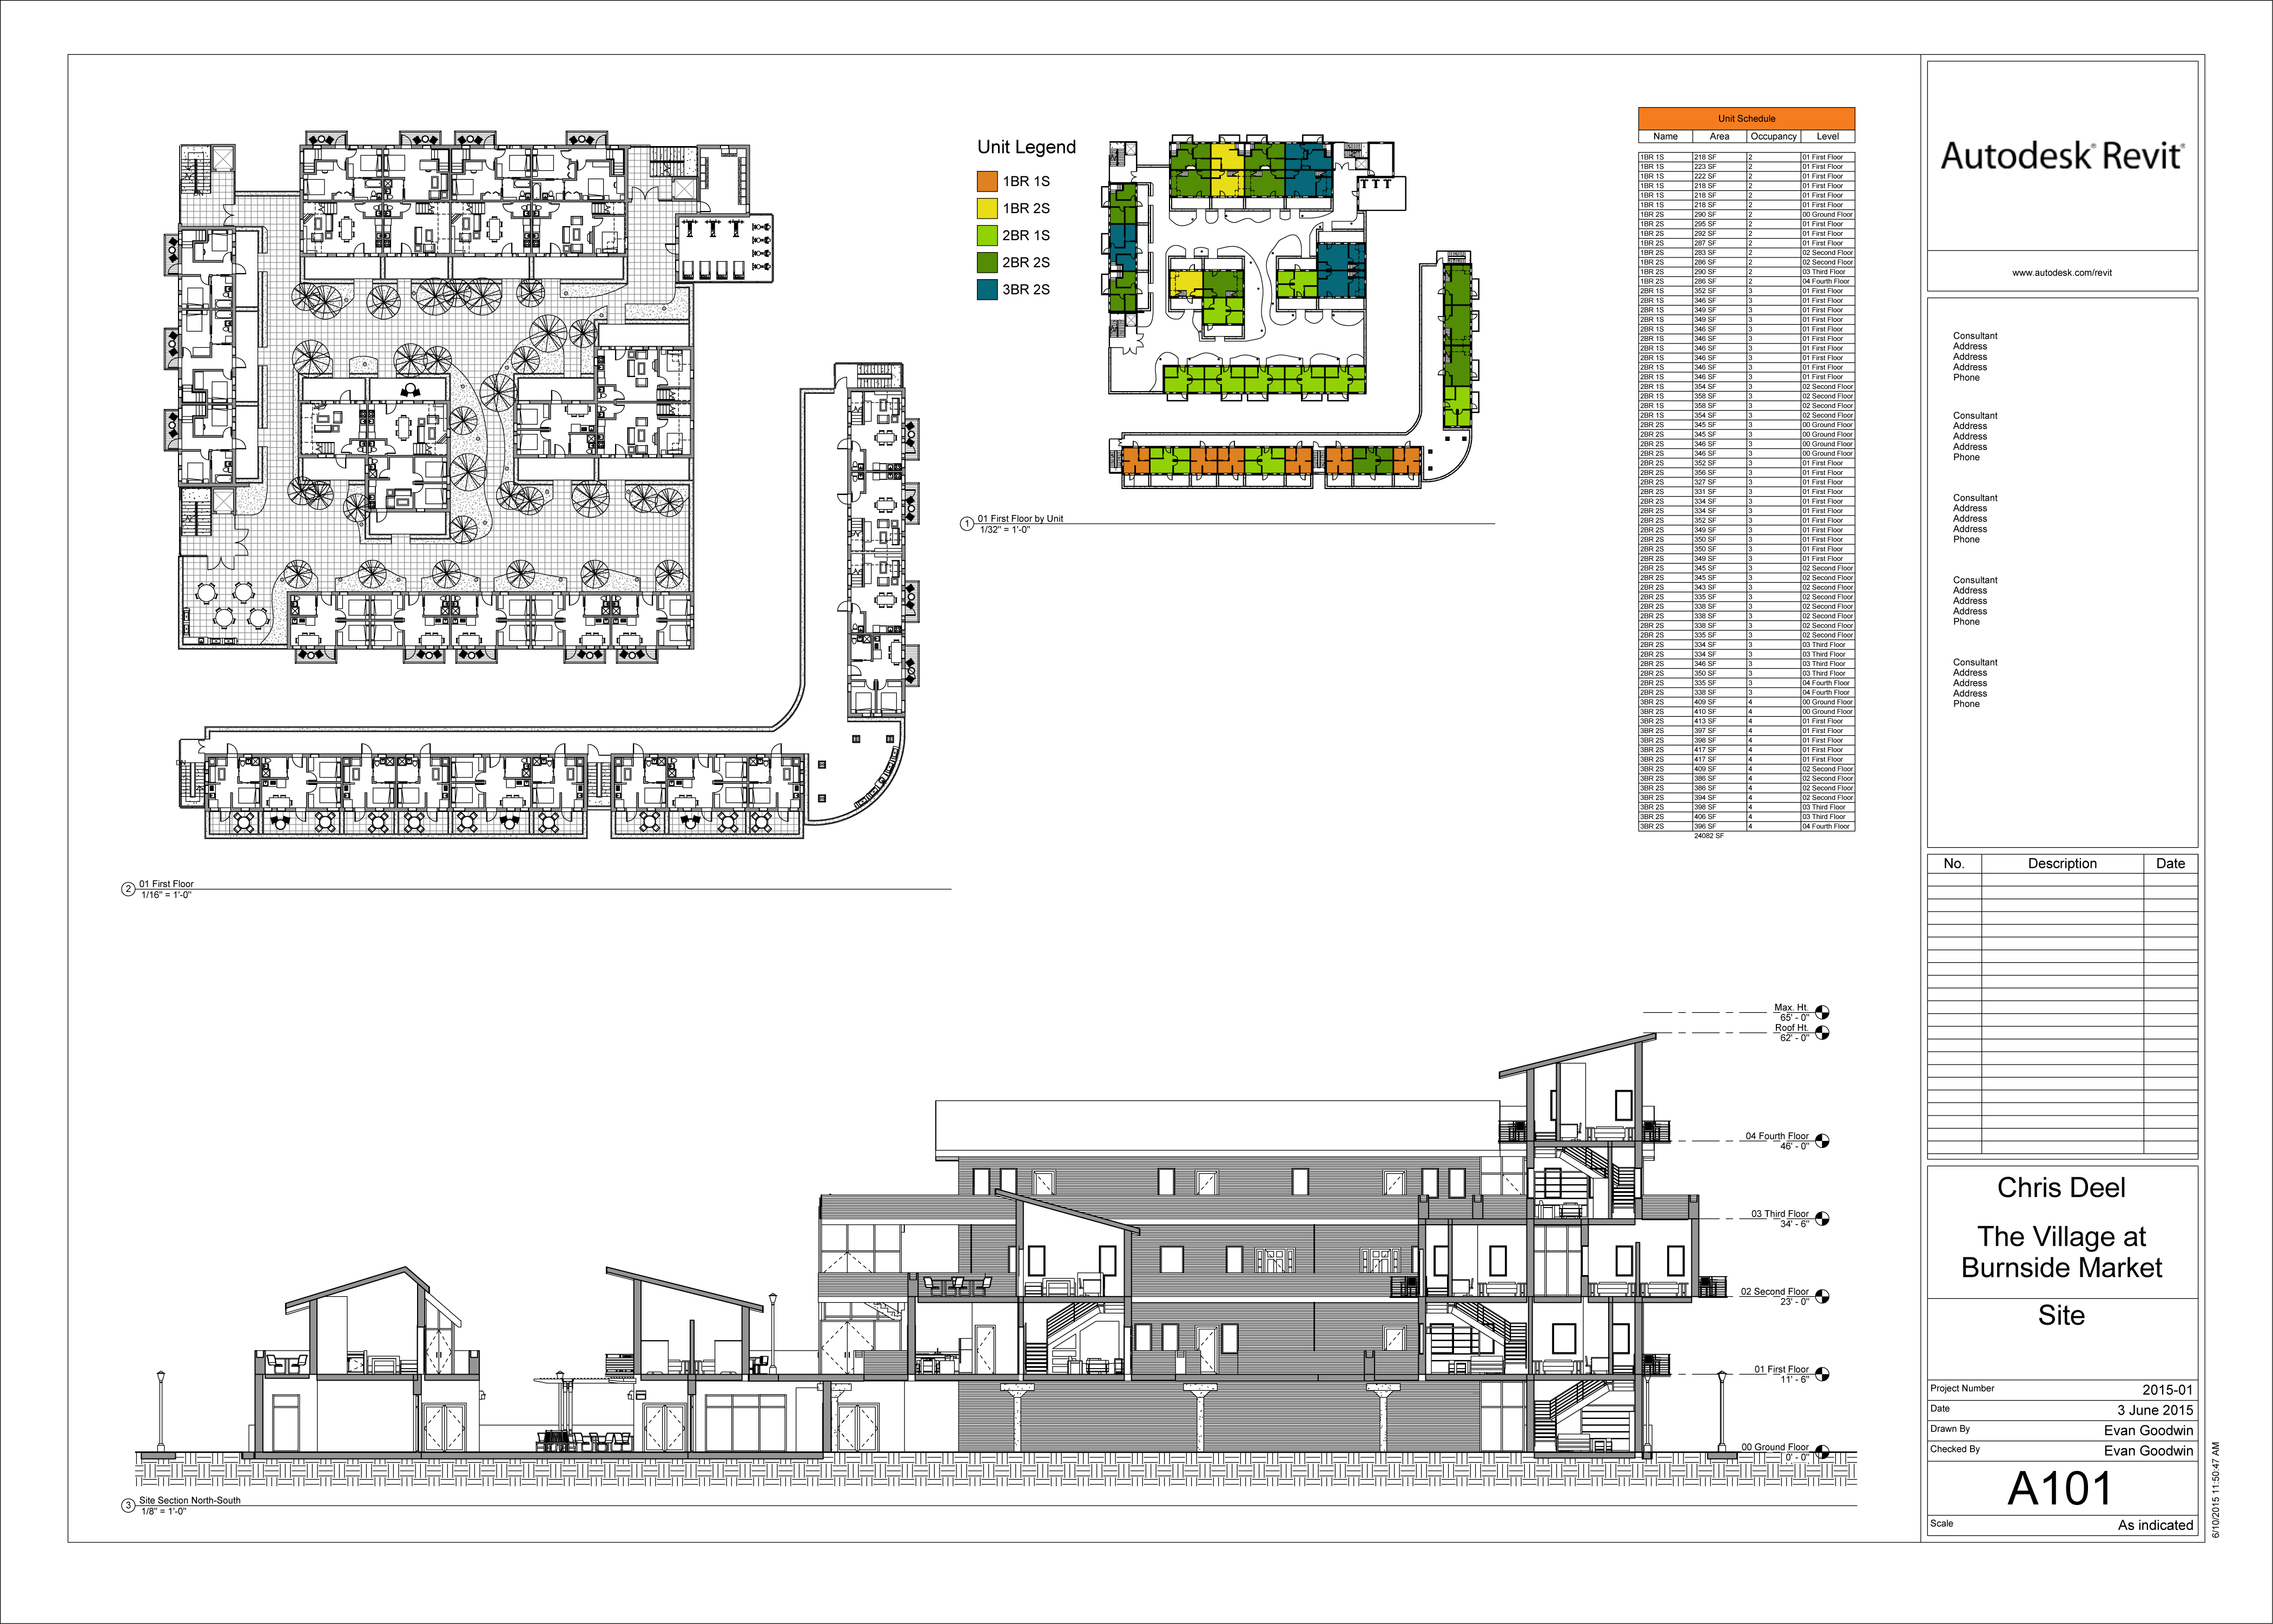 Revit Sheet with Site Information